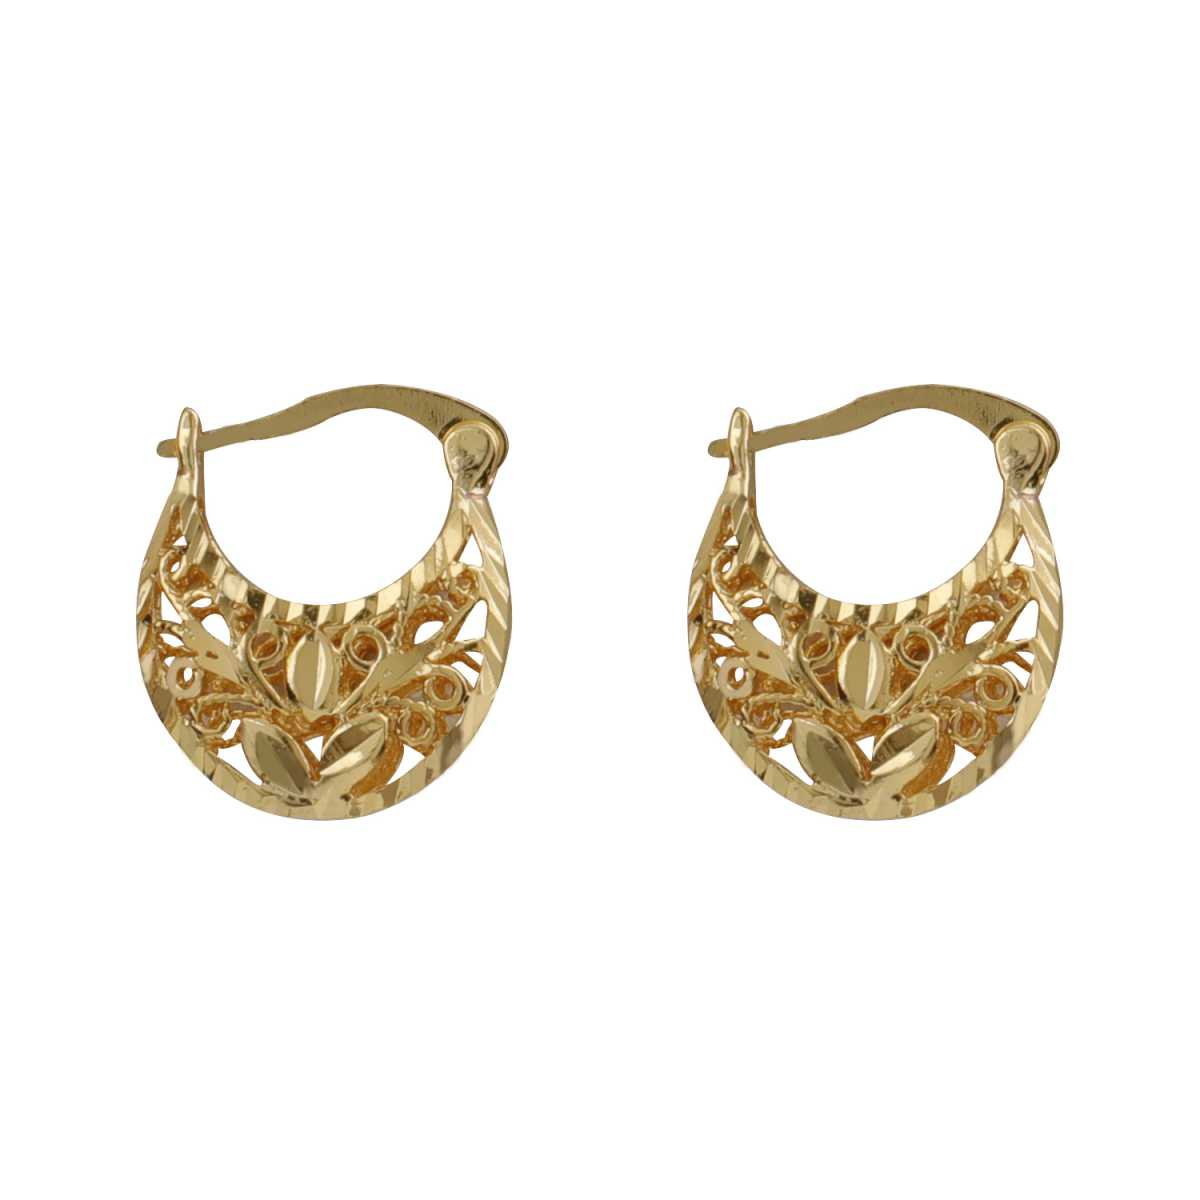 Silver Shine Lovely Gold Well Polished Hollow Design Hoop Bali Earring For Girls And Women